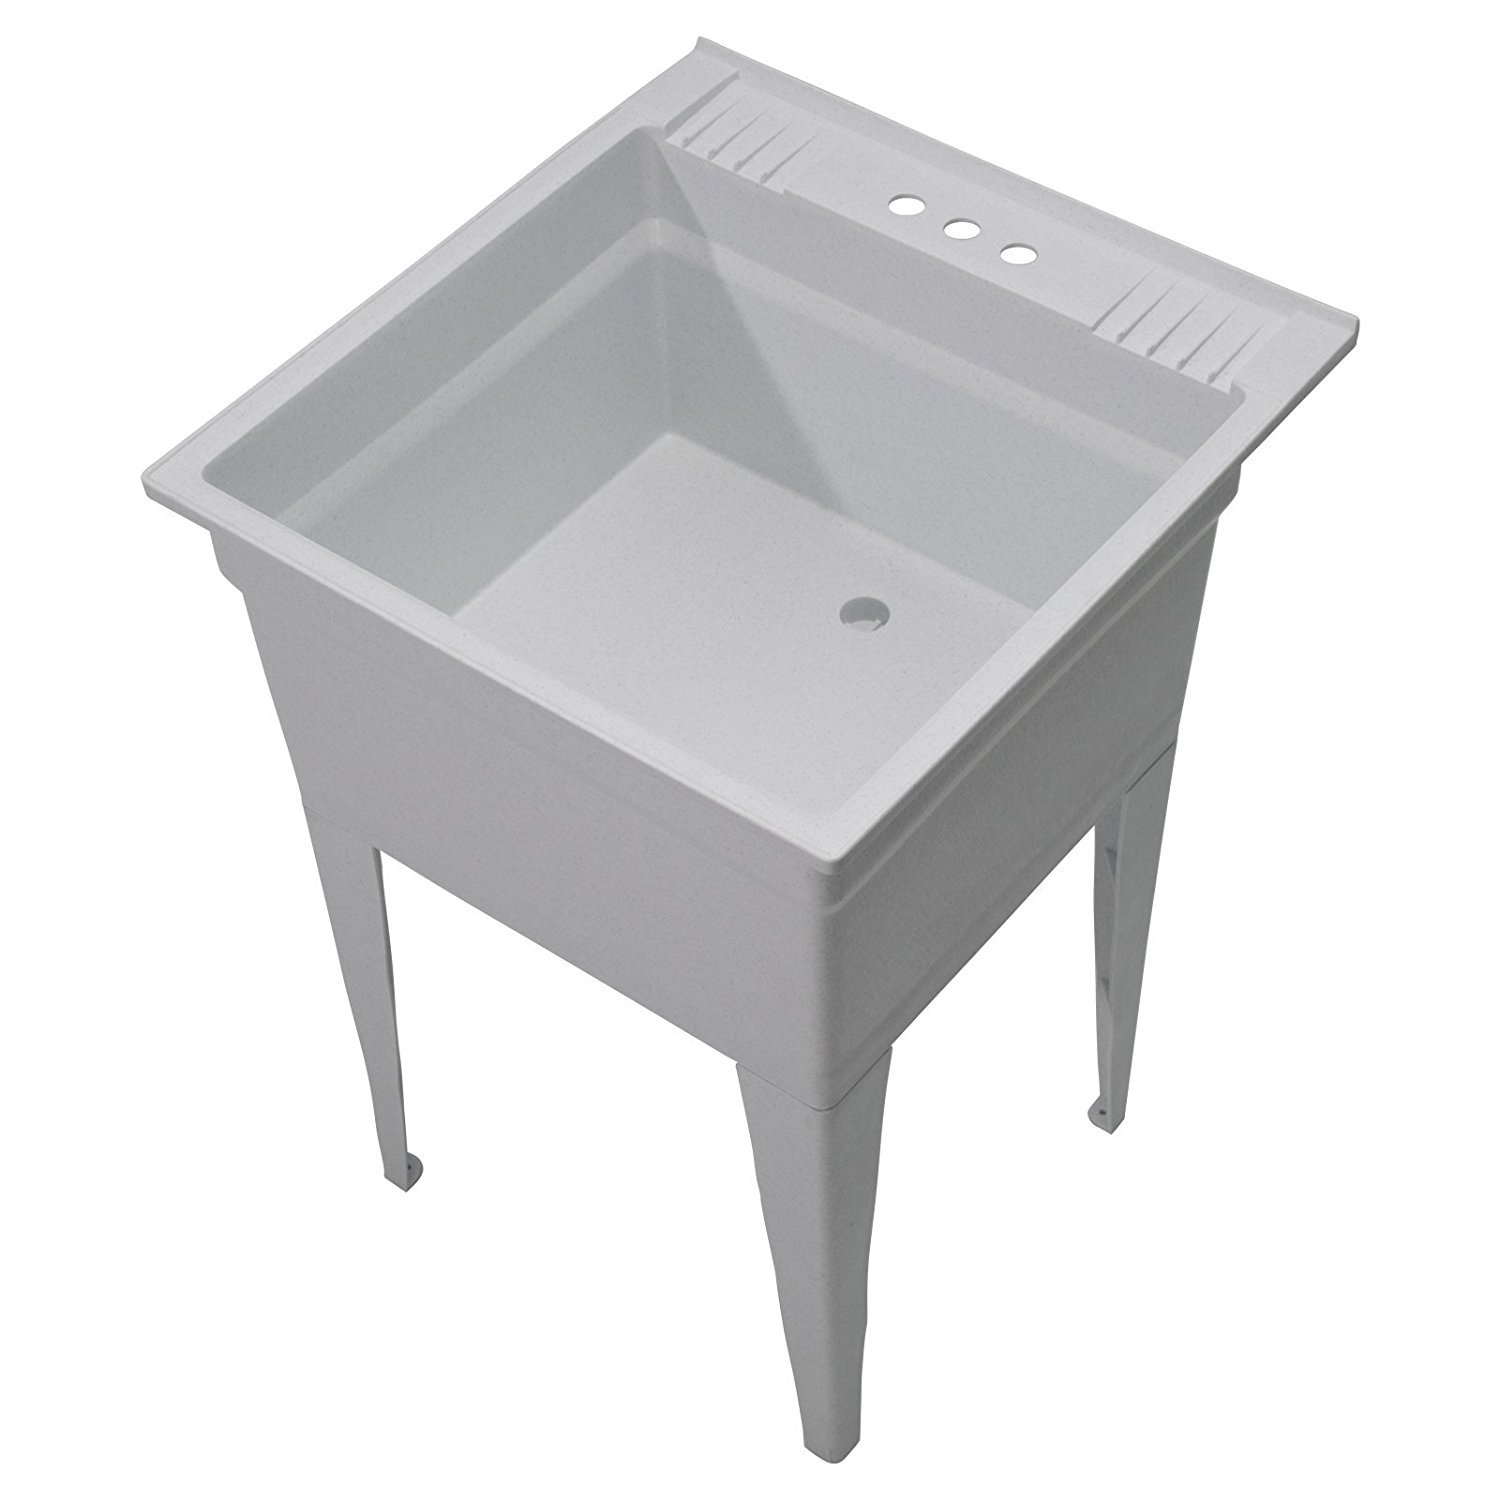 CASHEL Heavy Duty Free-Standing Utility Sink - Essential Sink Kit, 1960-20-02, Granite